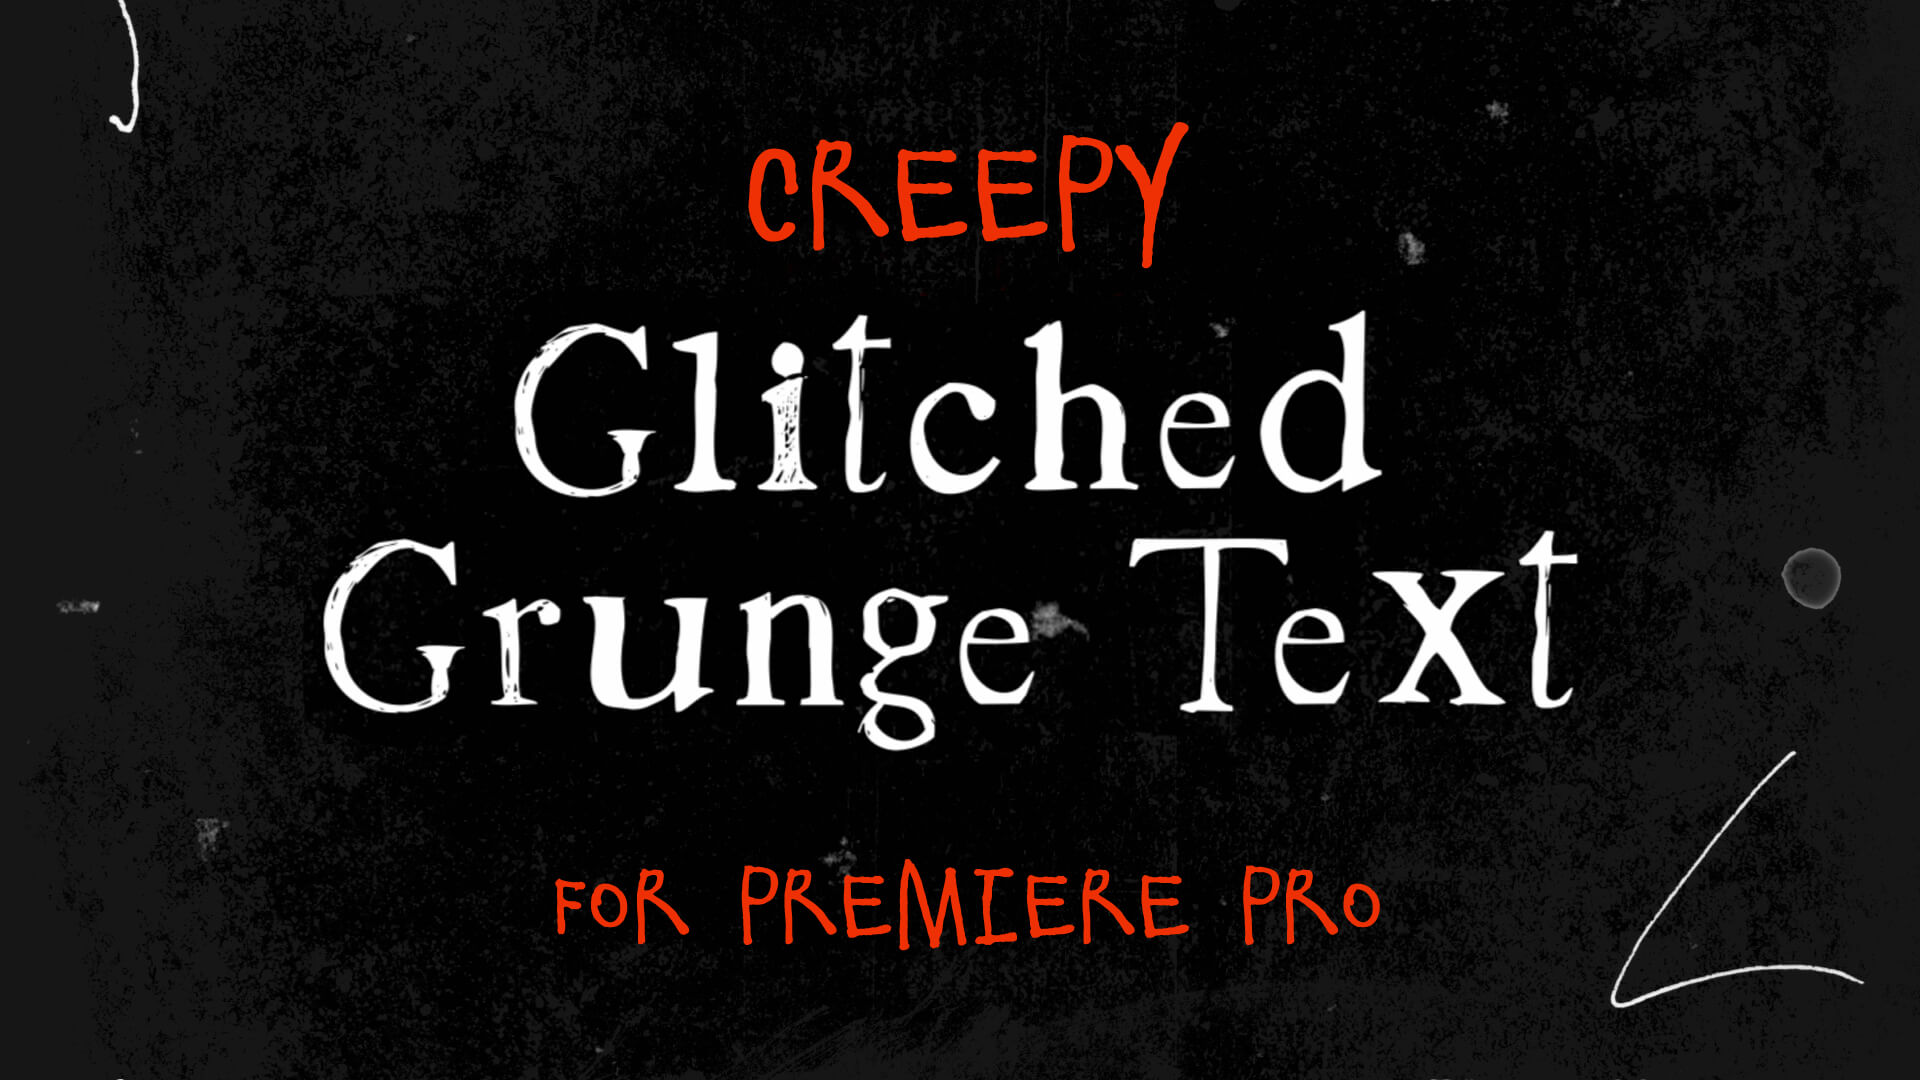 Creepy Glitched Grunge Text Overlay Premier Pro Template